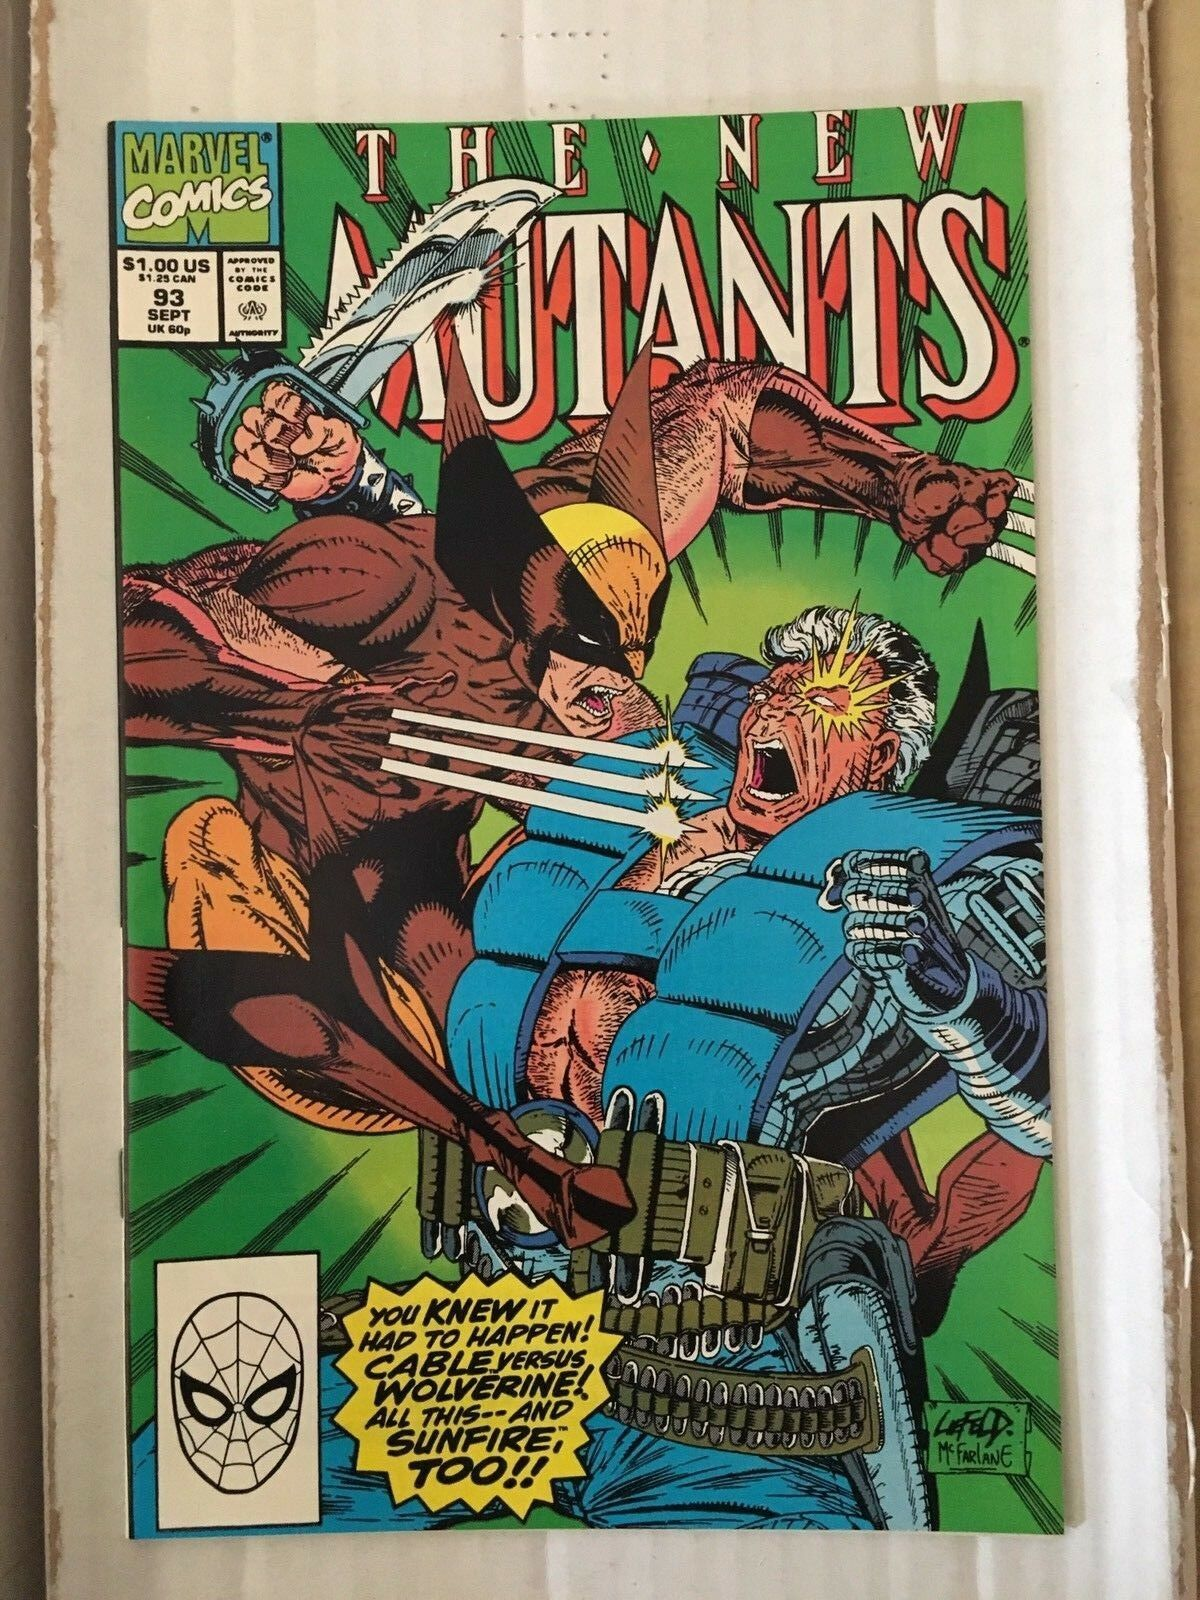 New Mutants #85 Marvel Comic Book from 1990 VF+/NM Liefeld / Todd McFarlane